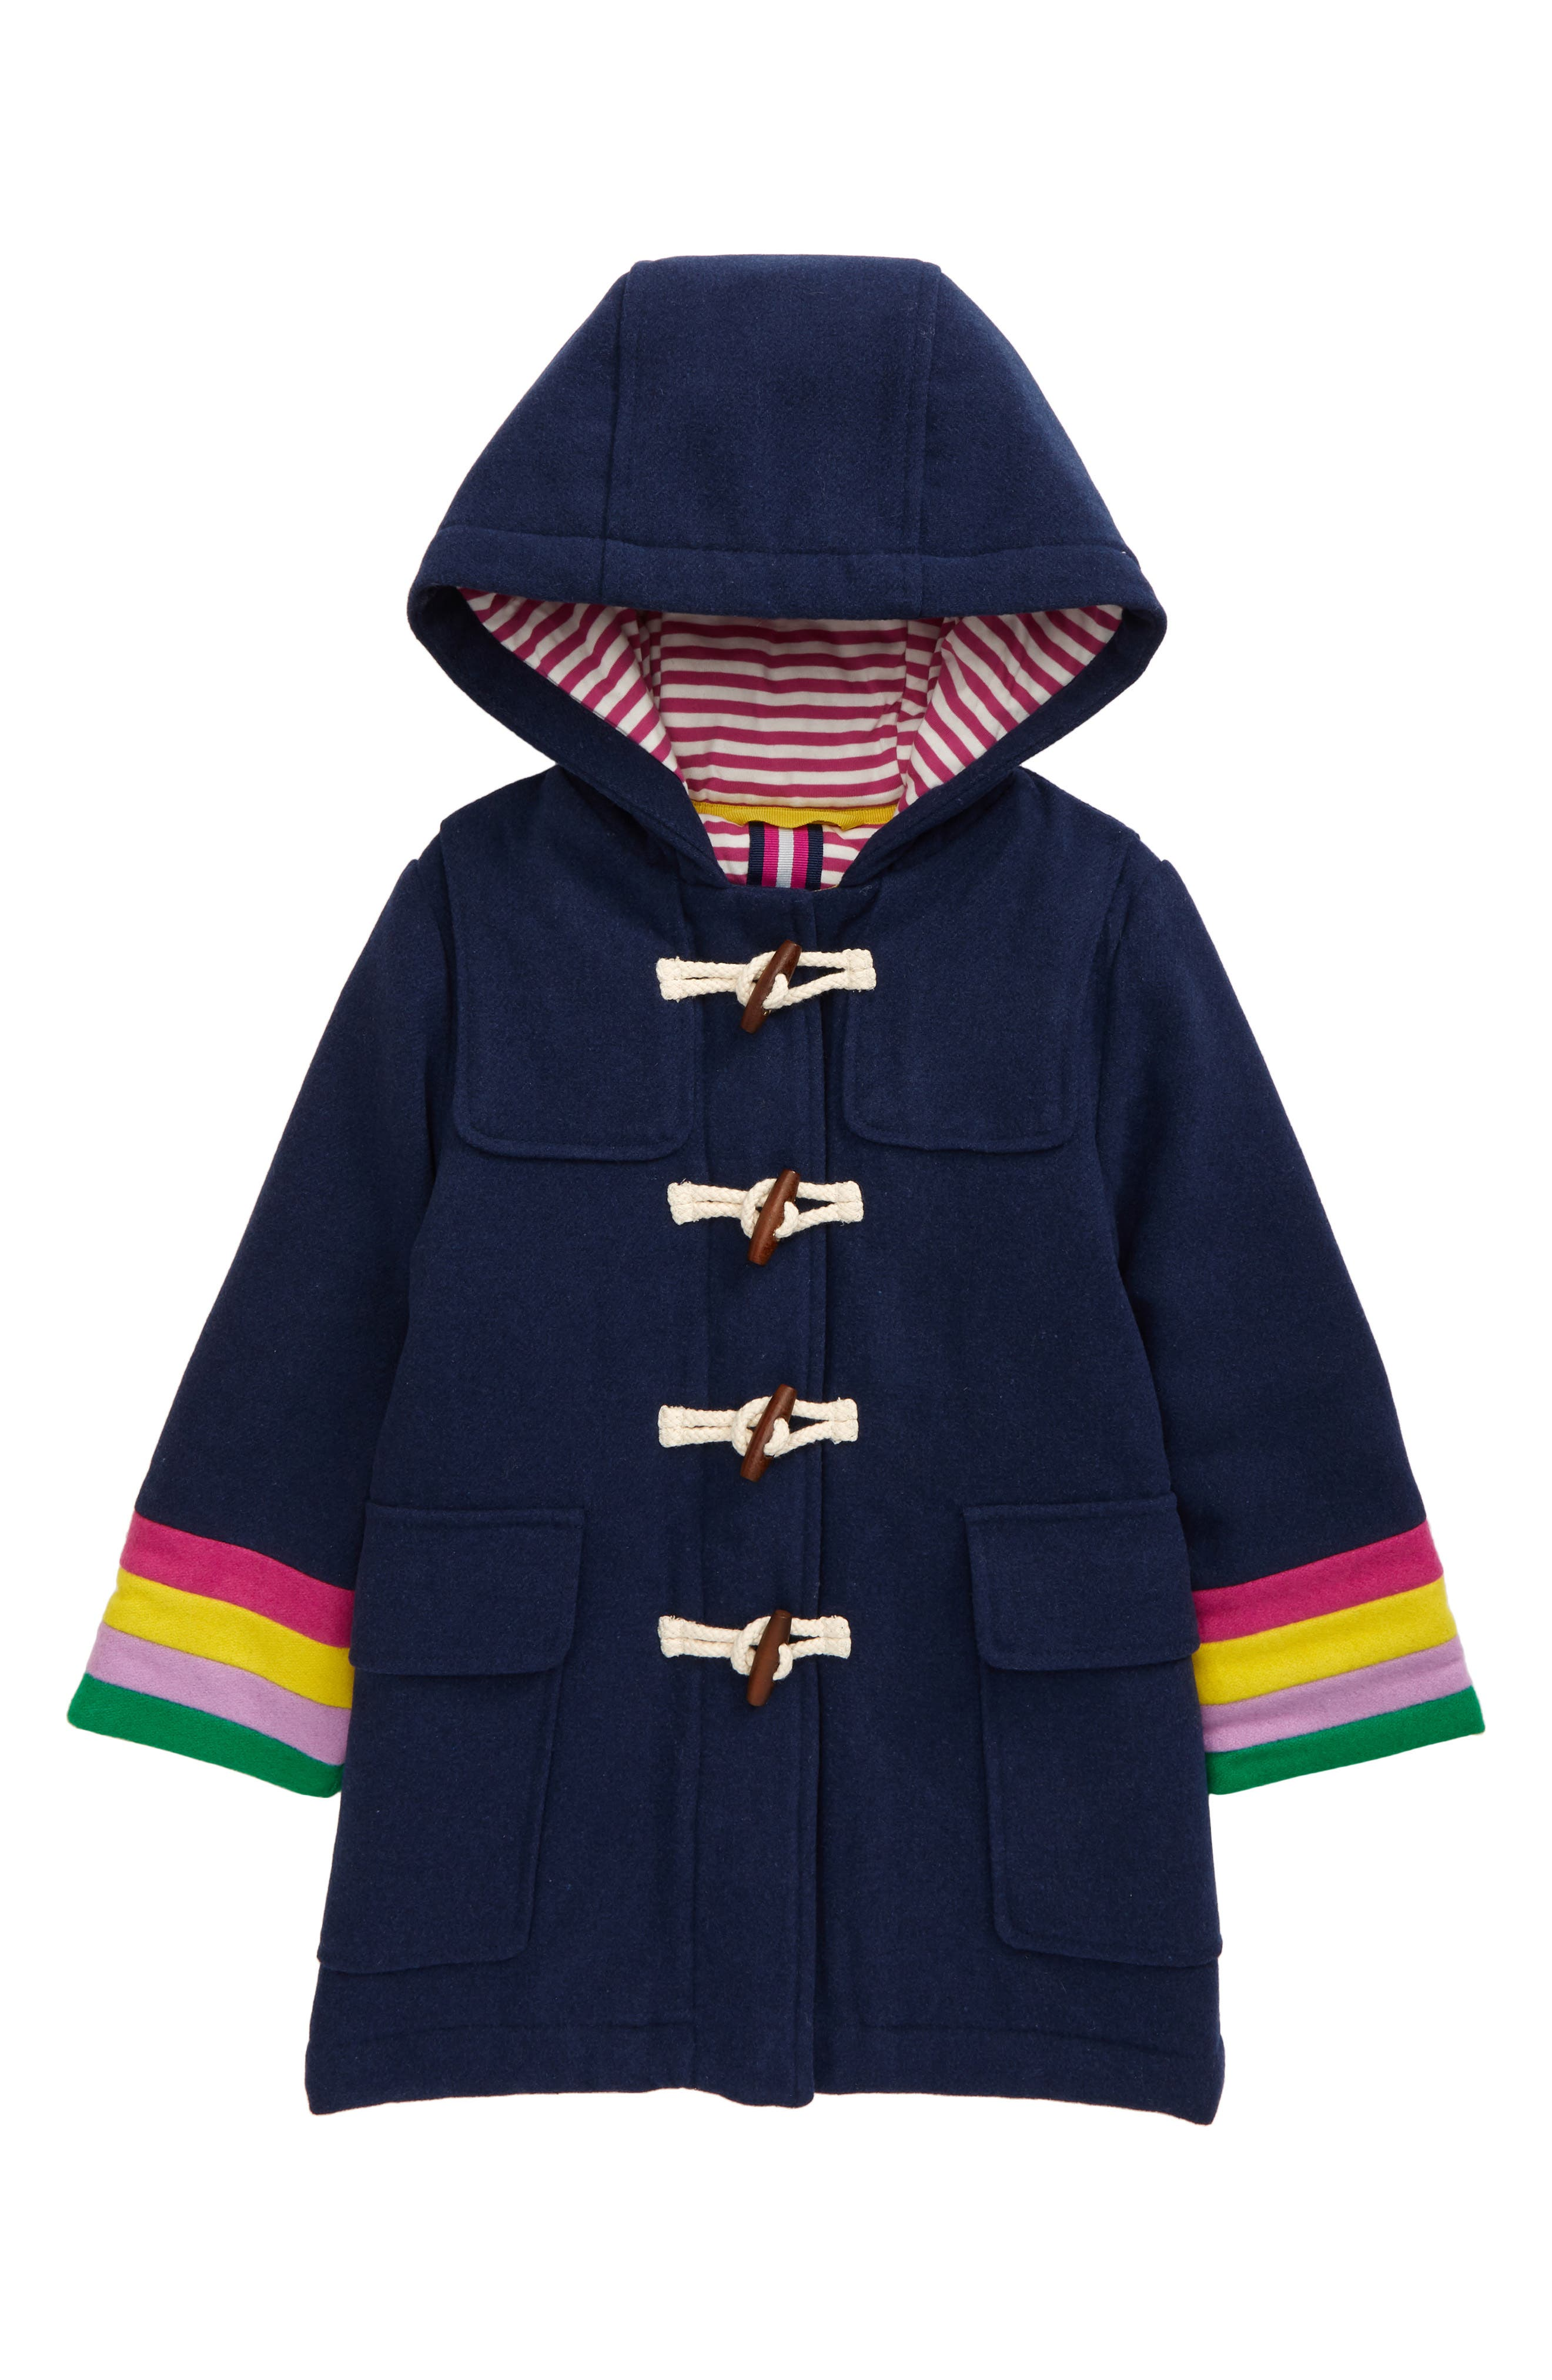 Charming rainbow stripes brighten the sleeves of a warm and cozy coat topped with a roomy hood and finished with toggle closures at the front. Style Name: Mini Boden Kids\\\' Toggle Hooded Coat (Toddler, Little Girl & Big Girl). Style Number: 6116166. Available in stores.